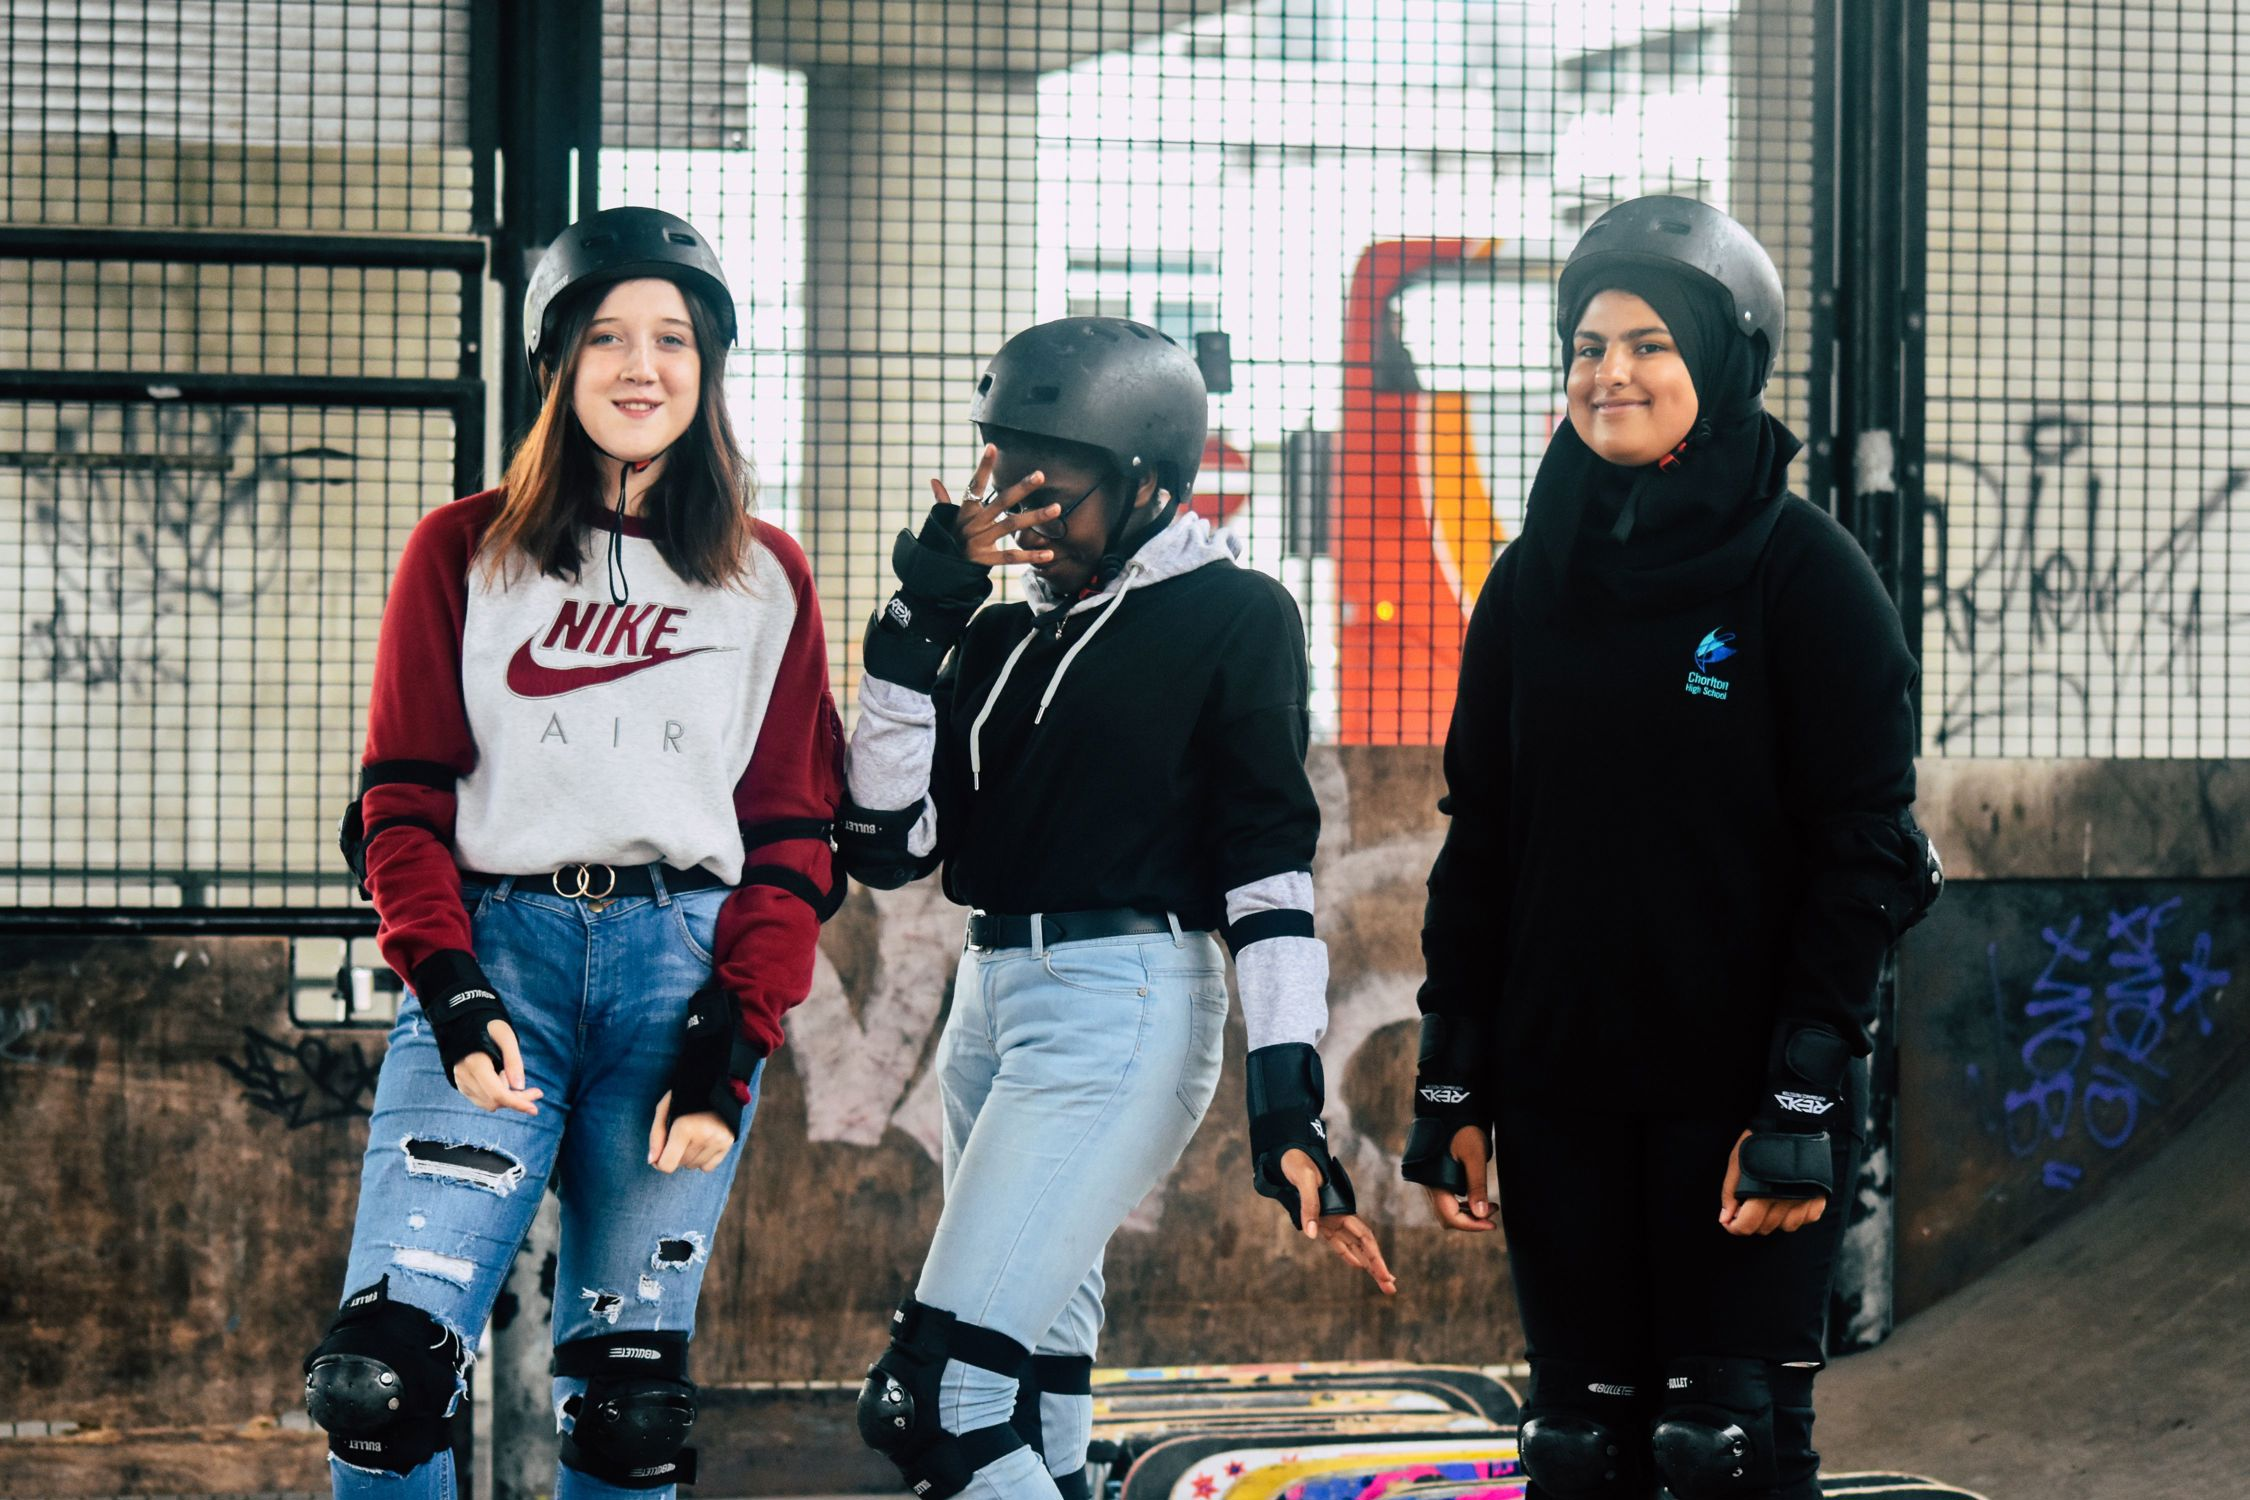 Young people together at skatepark